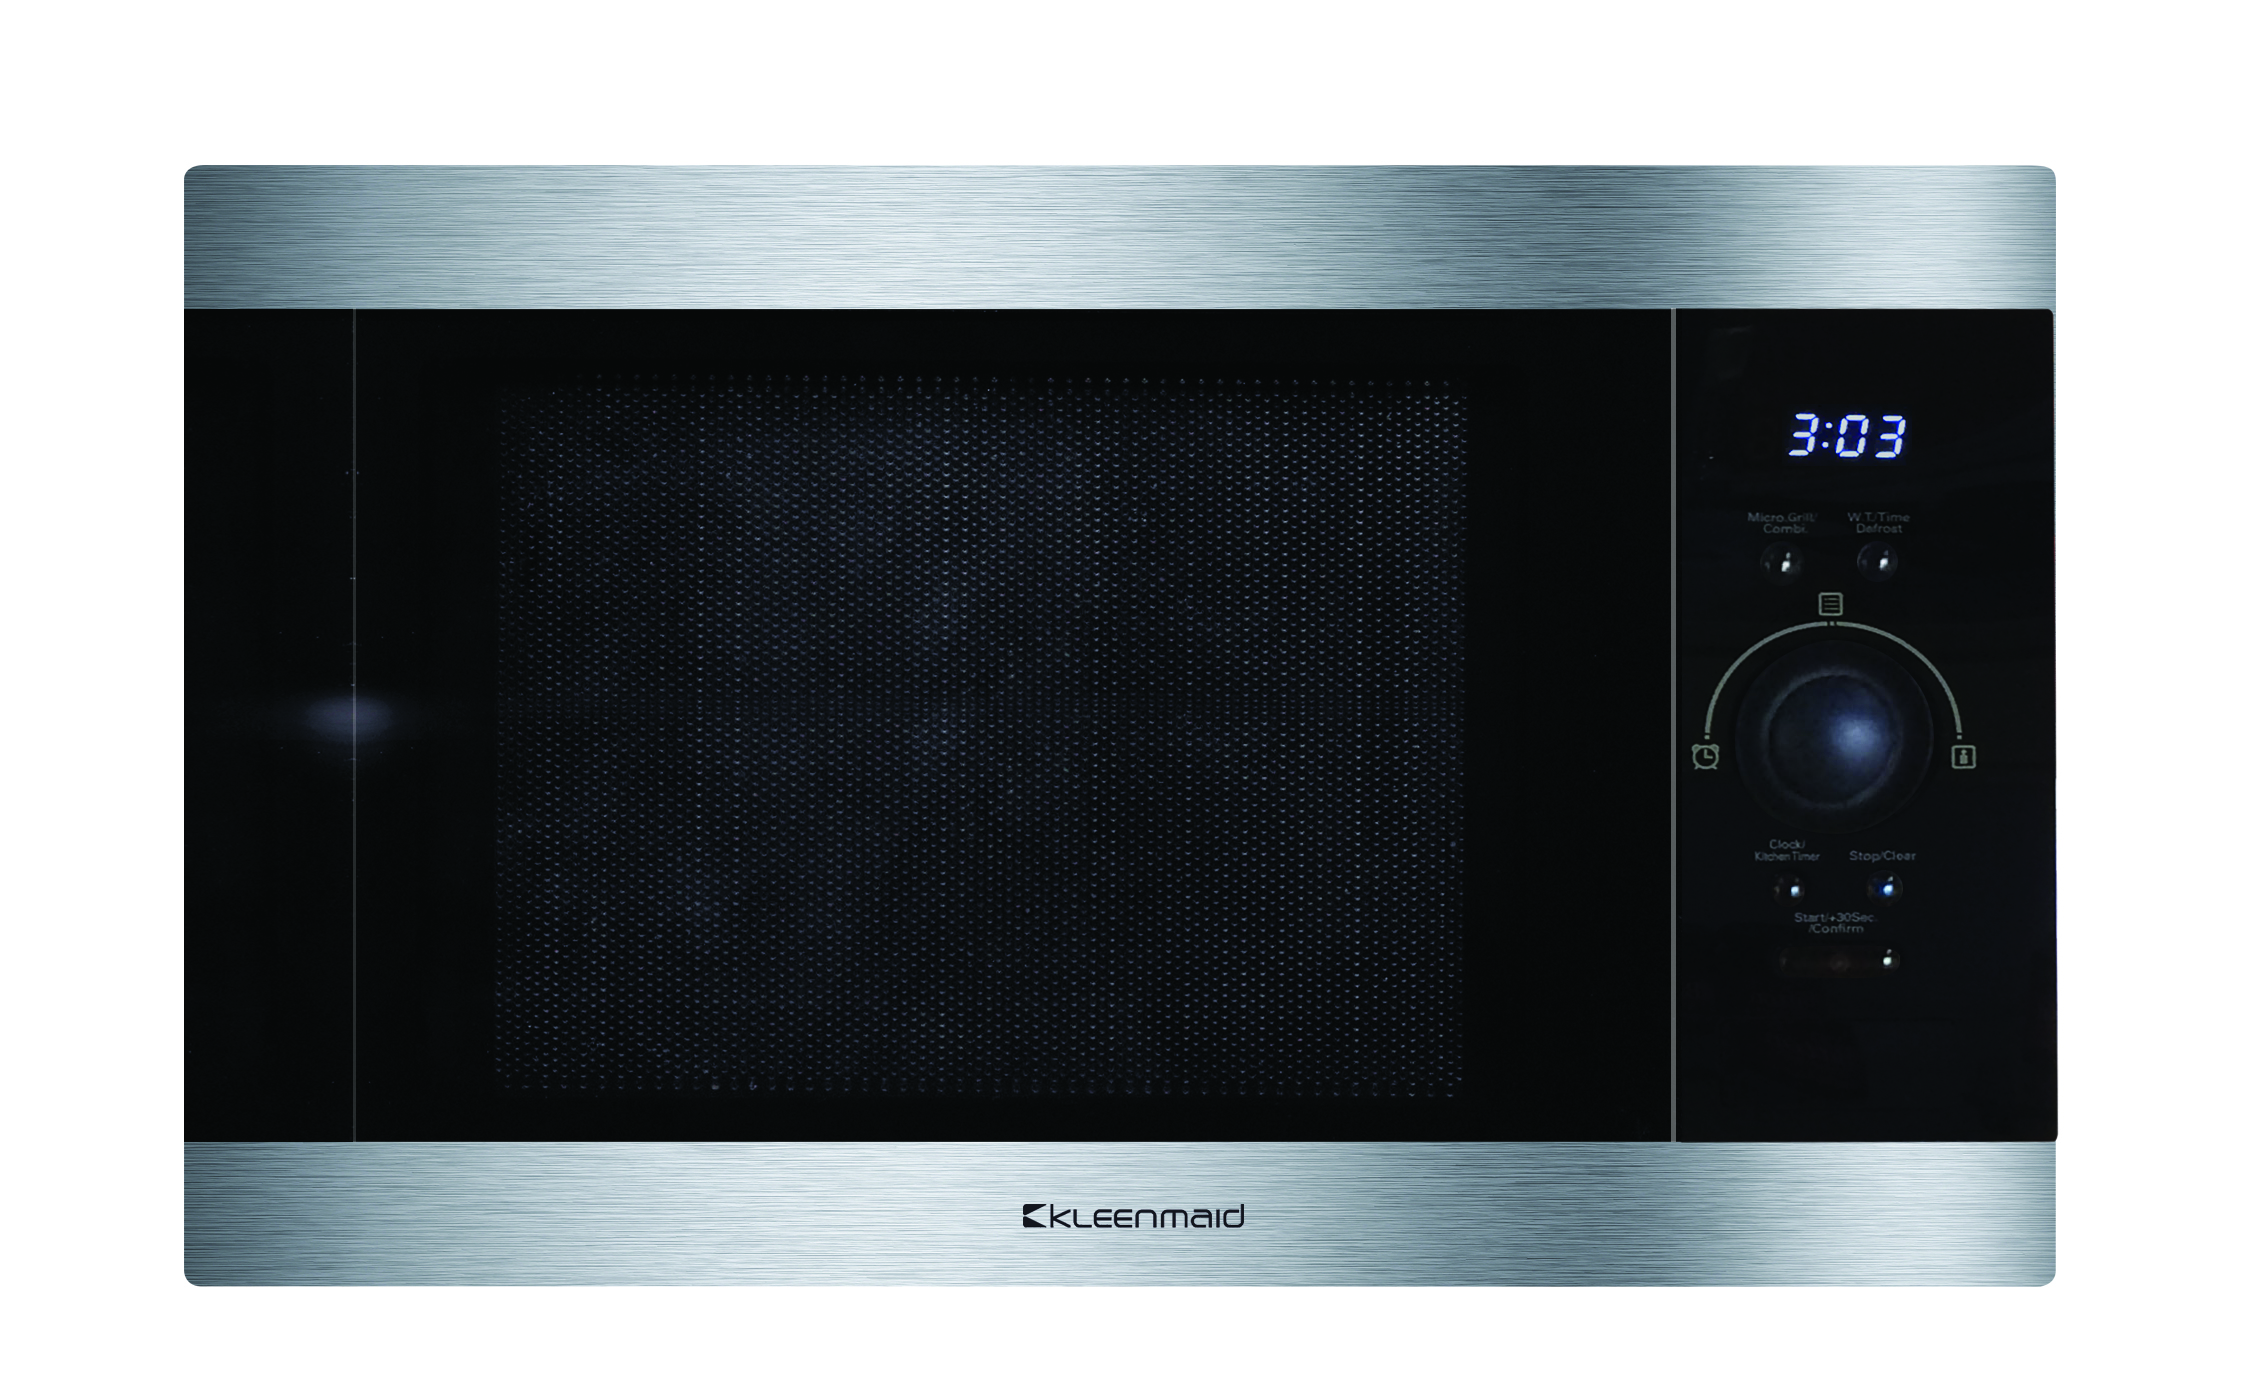 Built In Microwave Grill Mwg4511 Ikon Commercial